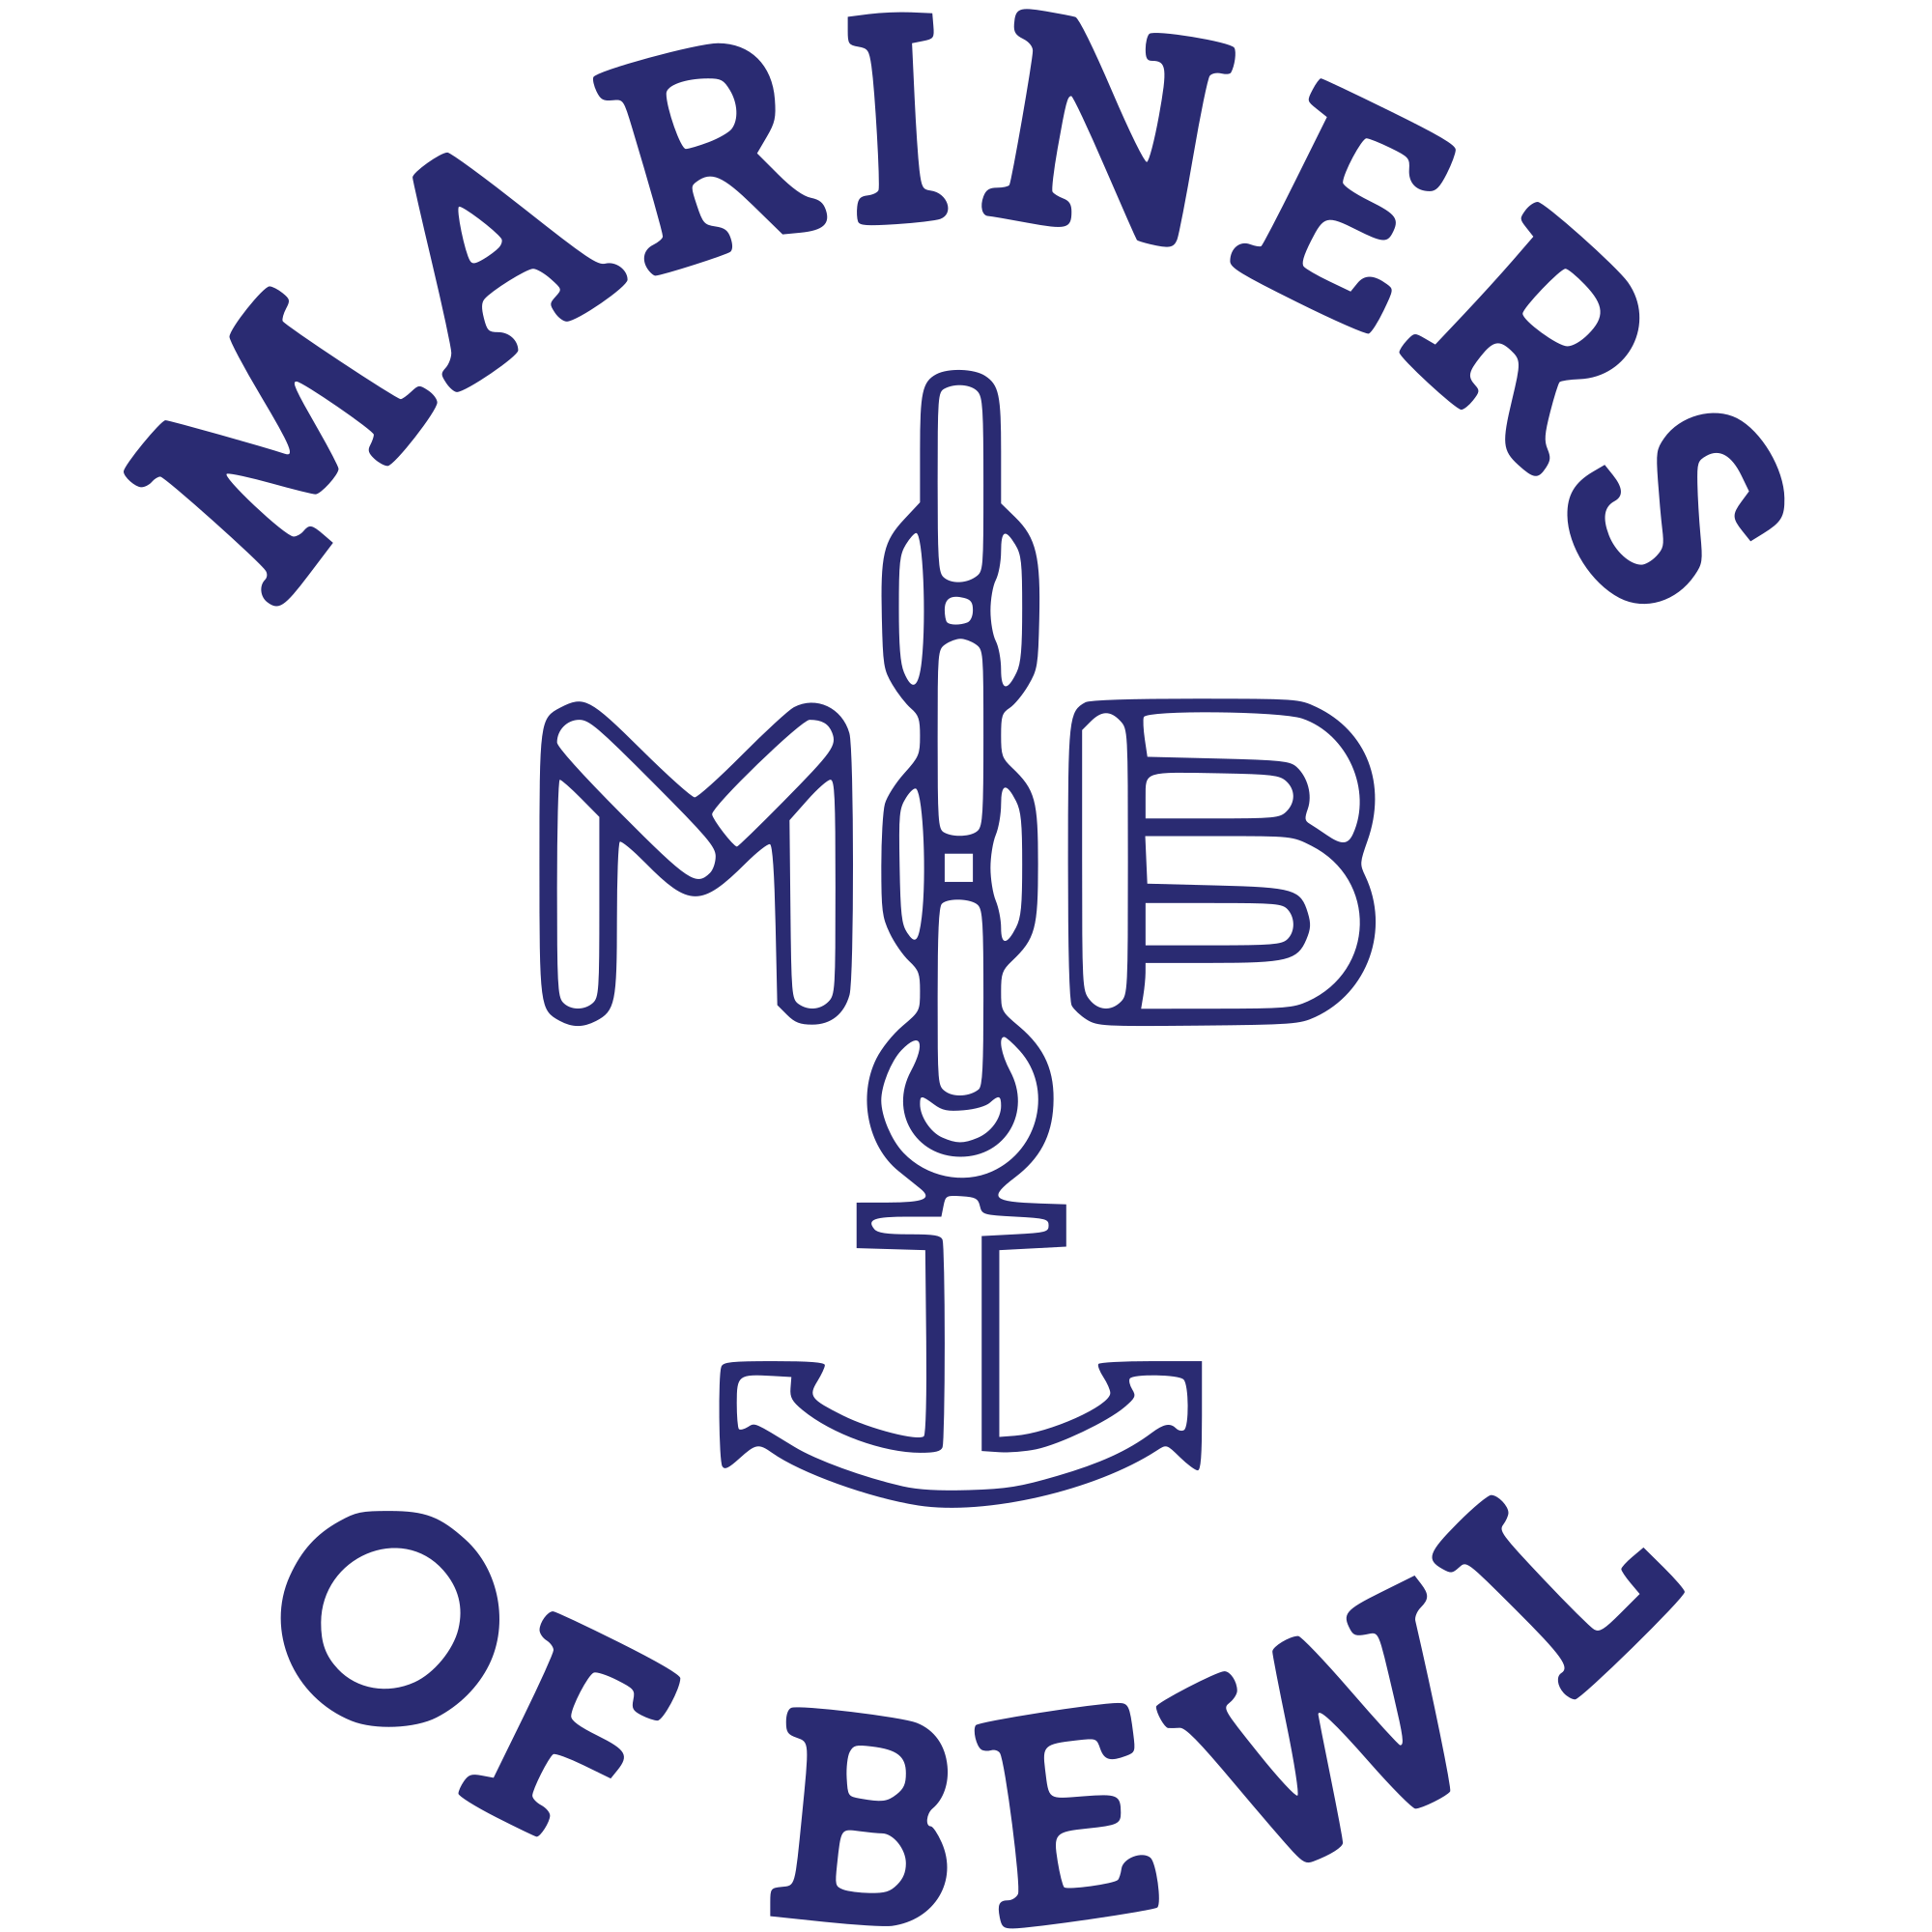 Mariners of Bewl (dinghy sailing) logo